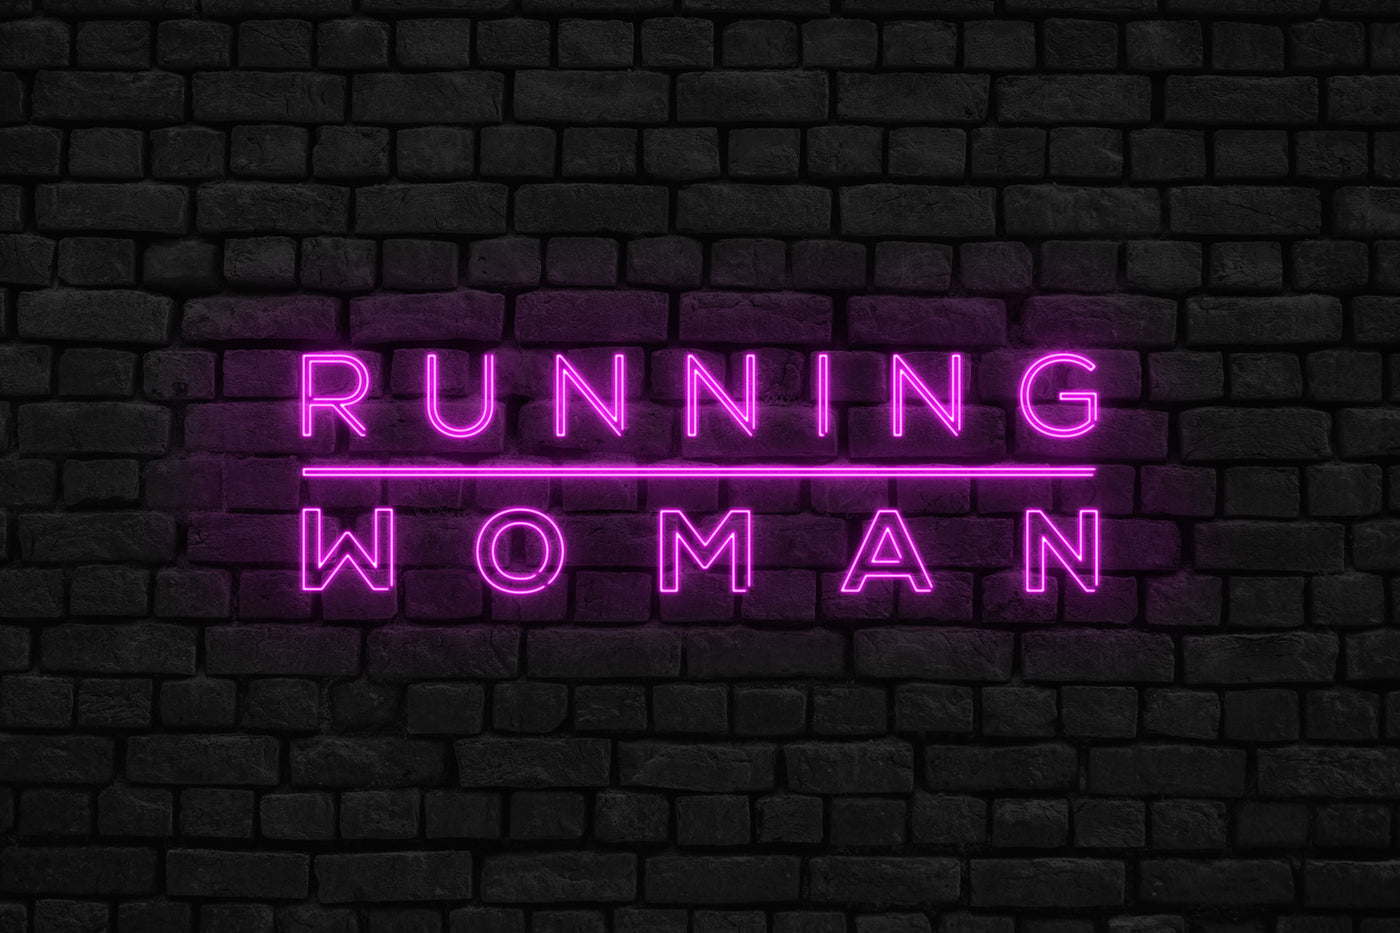 Welcome to Running Woman header